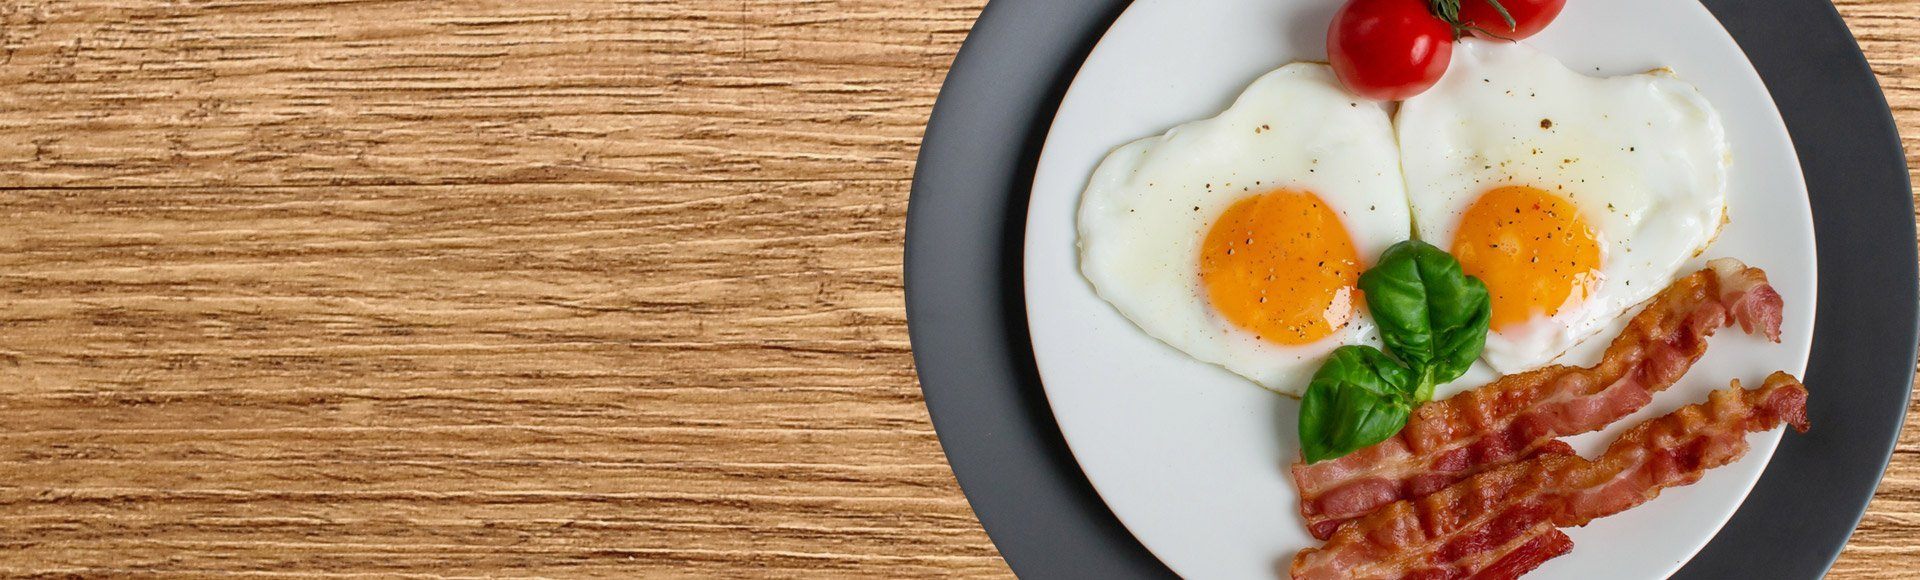 heart shaped eggs on a plate with baco